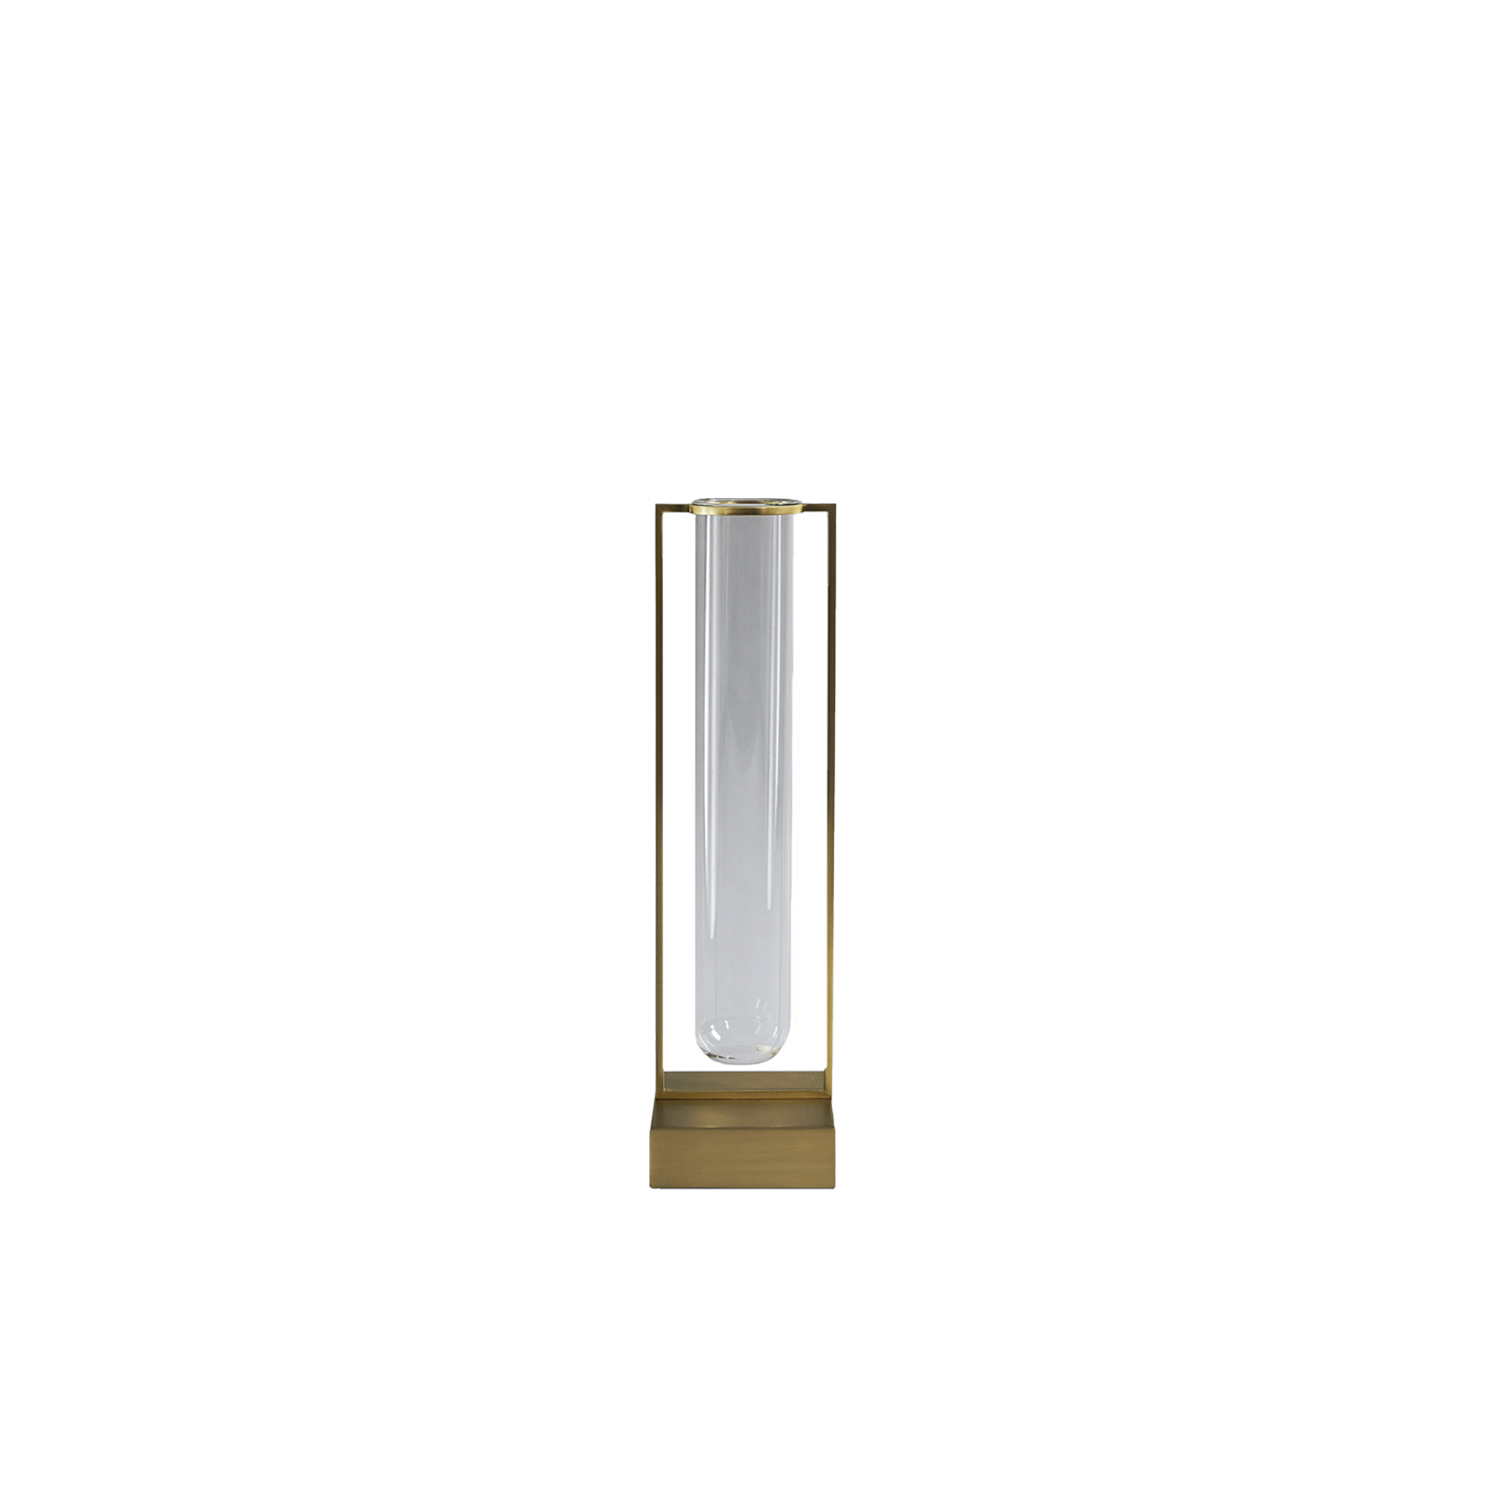 Set of 2 Tate Metal Vase - Tate is a timeless vase that reflects simplicity and functionality. The refined metal frame is elegantly shaped to carry the glass vase, while adding a sculptural detail throughout the design. Tate can stand alone as a sculpture in your interior, or serve as a vase for fresh flowers and appreciated objects.    Matter of Stuff